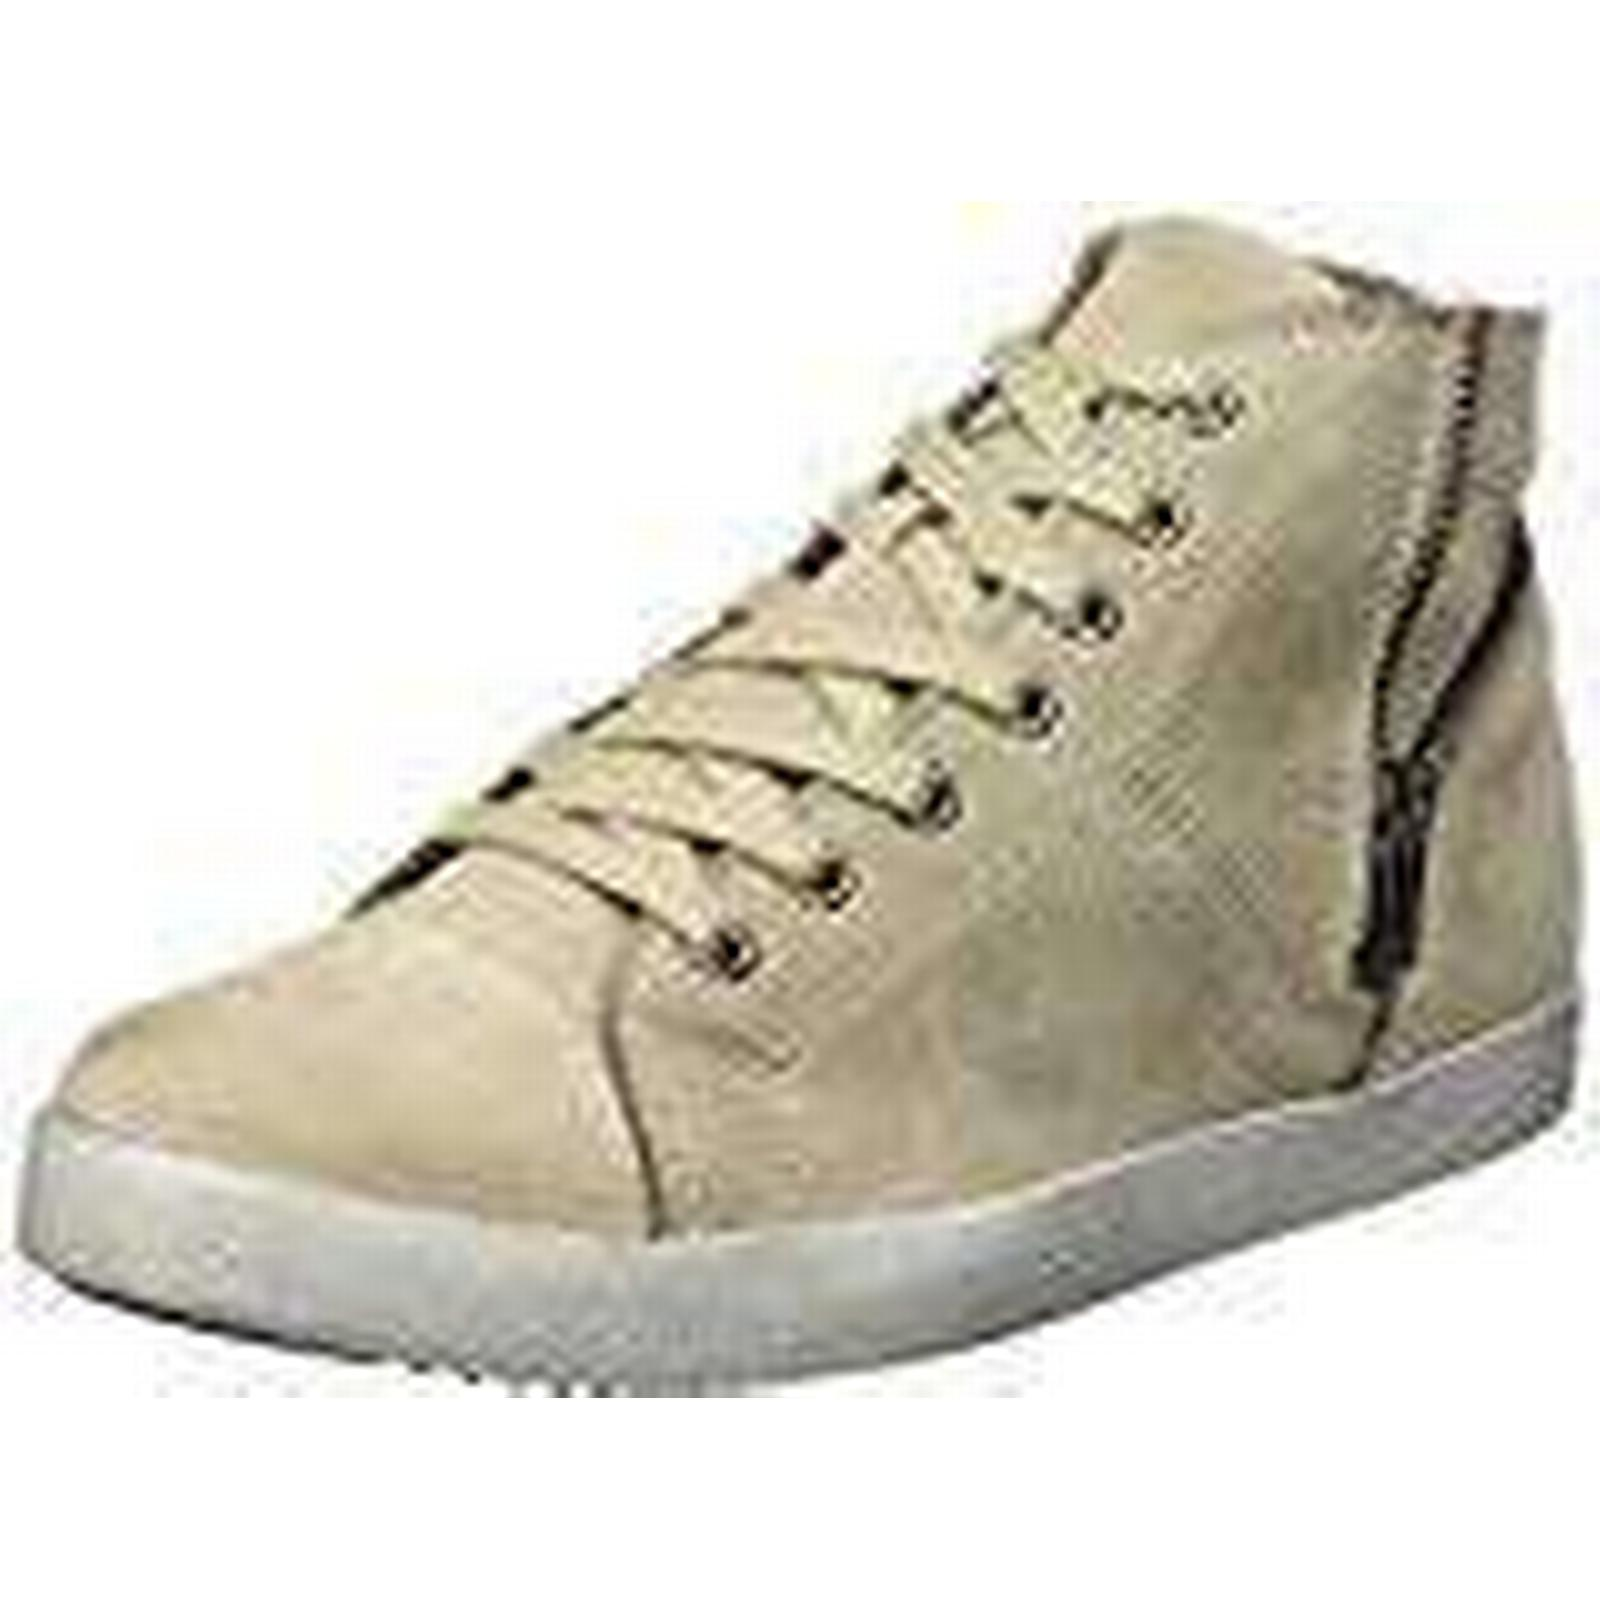 Tamaris Women''s 25283 Hi-Top Trainers, Brown 6 (Taupe Uni), 6 UK 6 Brown UK 64e2b5